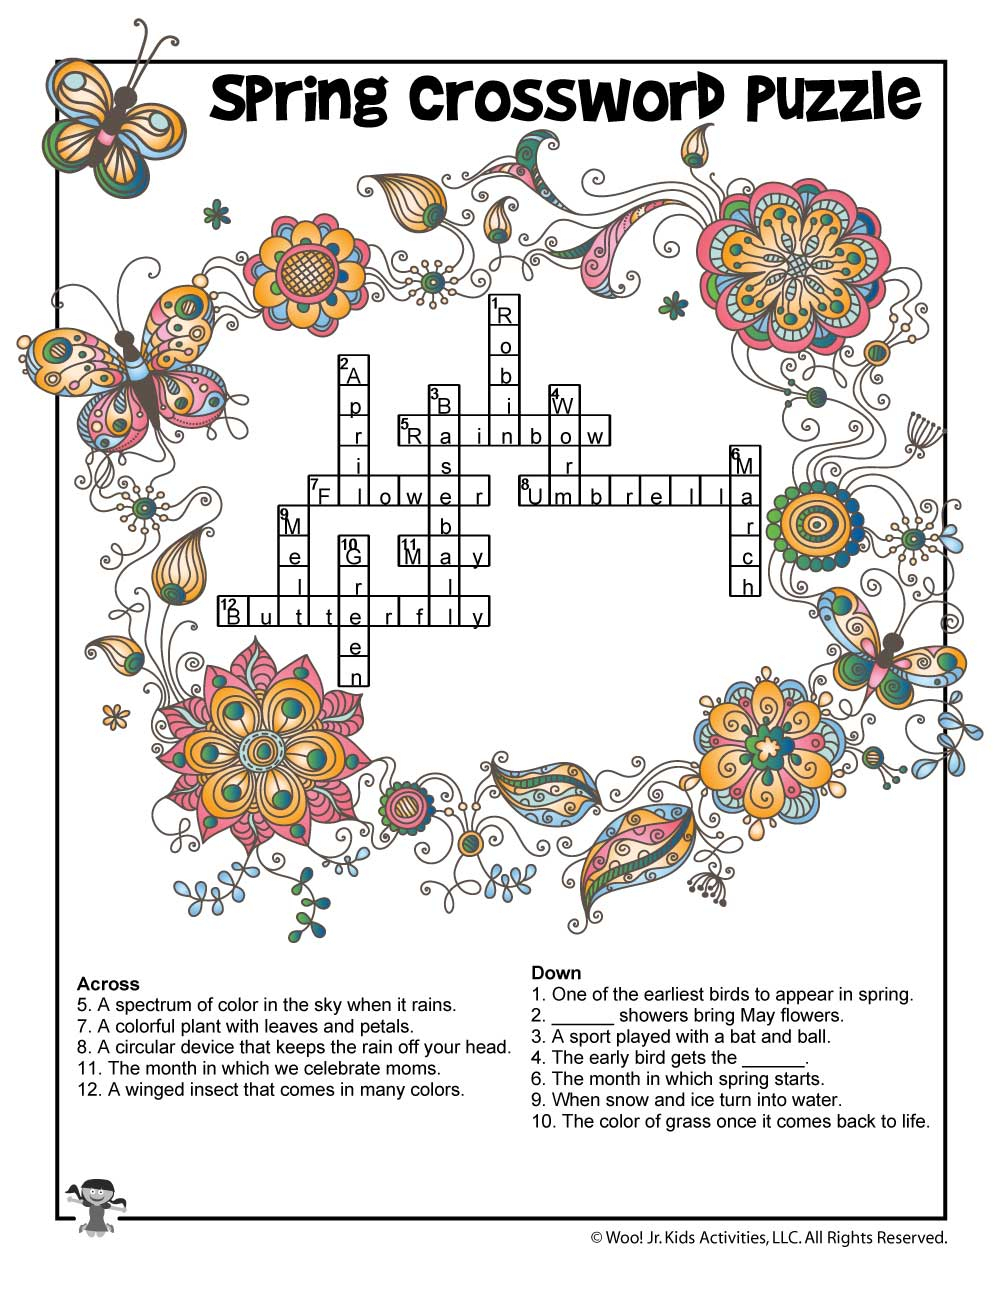 Spring Crossword Puzzle For Kids - Answer Key | Woo! Jr. Kids Activities - Printable Crossword Spring